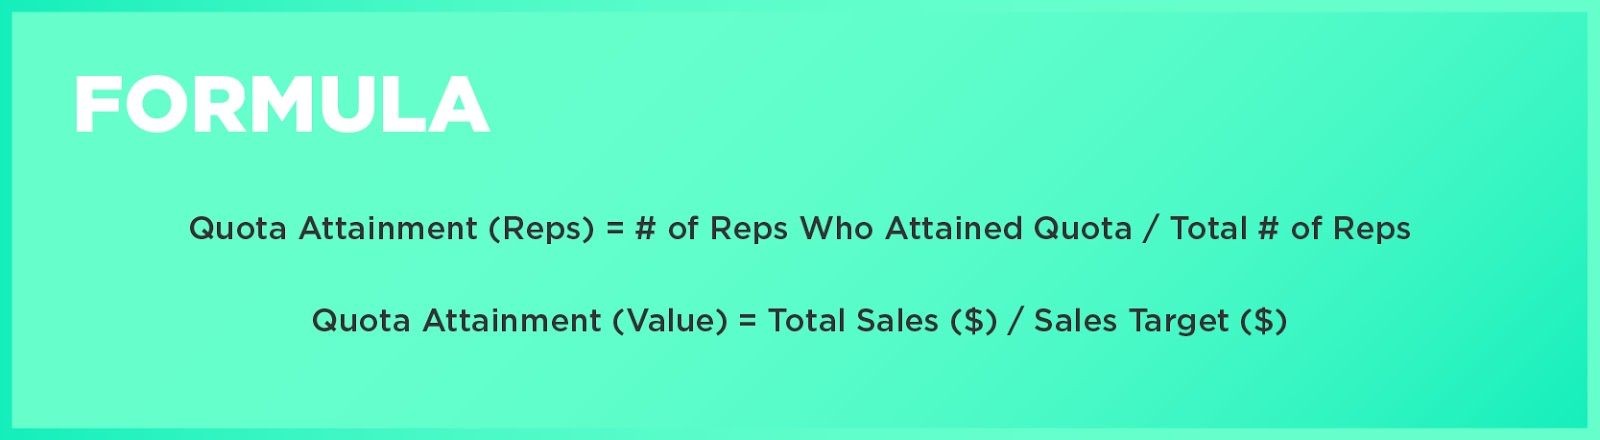 Formula: Quota Attainment (Reps) = # of Reps Who Attained Quota / Total # of RepsQuota Attainment (Value) = Total Sales ($) / Sales Target ($)